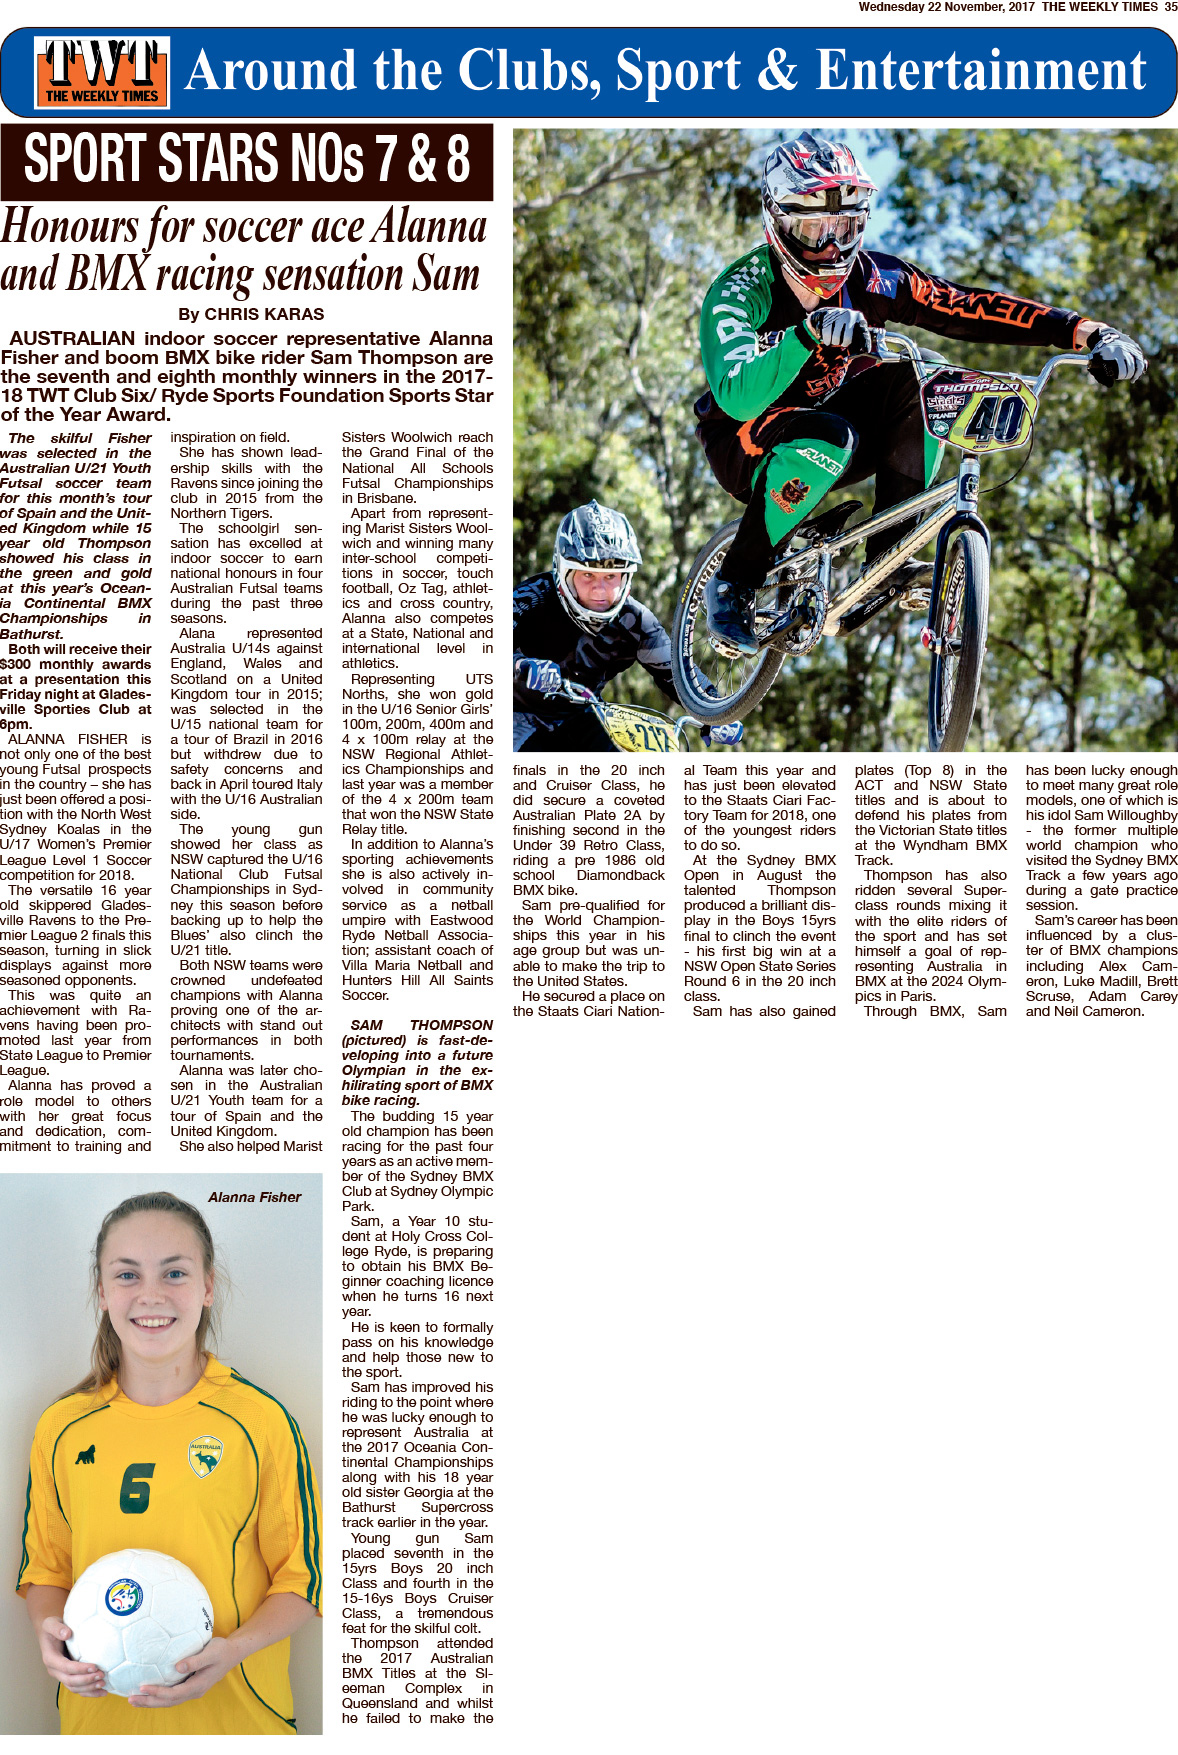 The Weekly Times 22 November 2017 article about Alanna Fisher